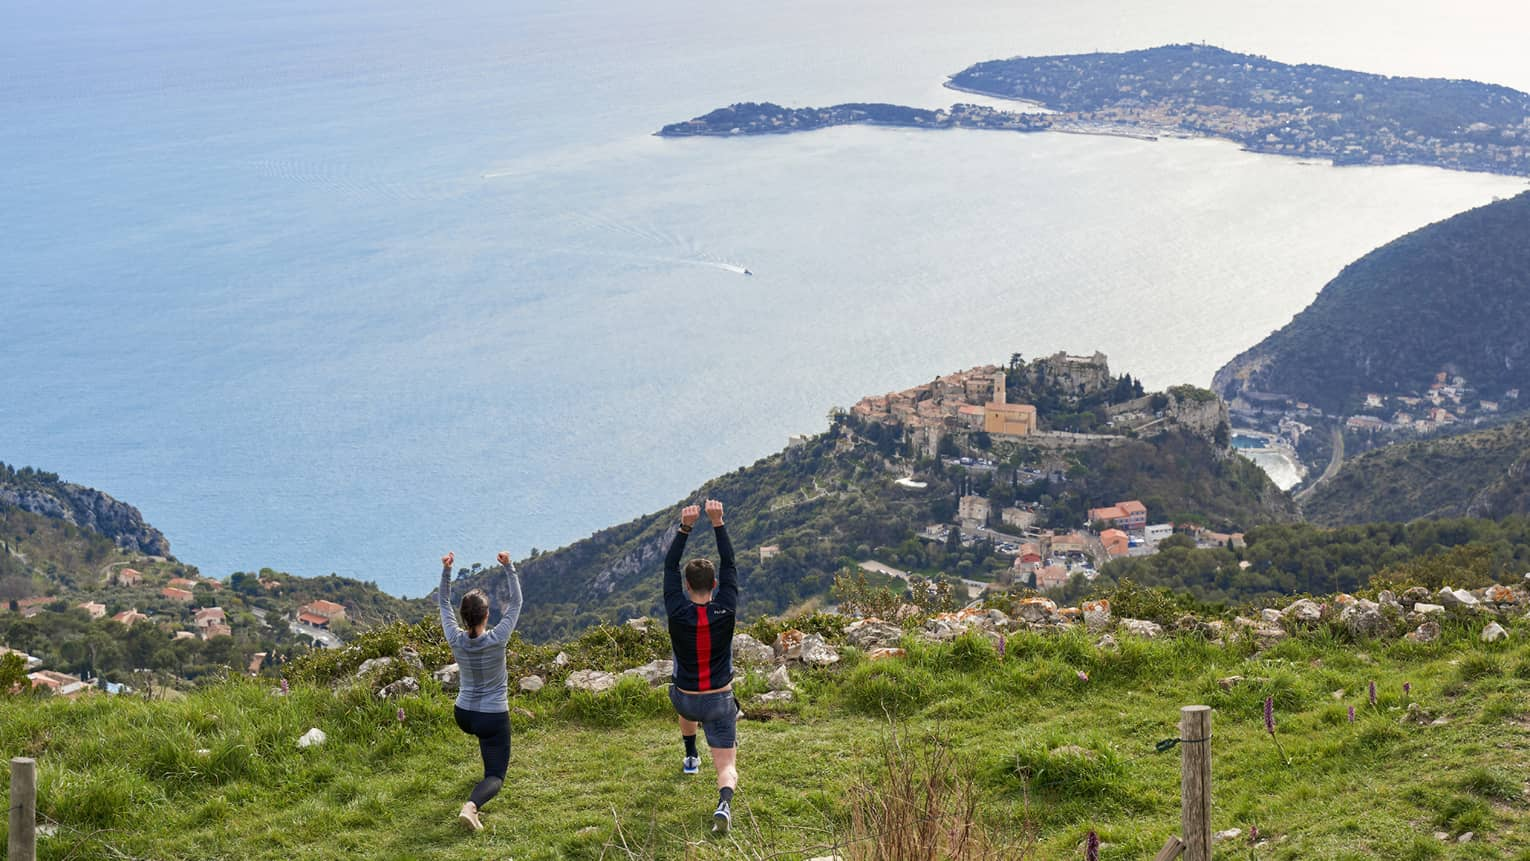 Rear view of woman and man doing yoga on green hilltop overlooking Mediterranean Sea